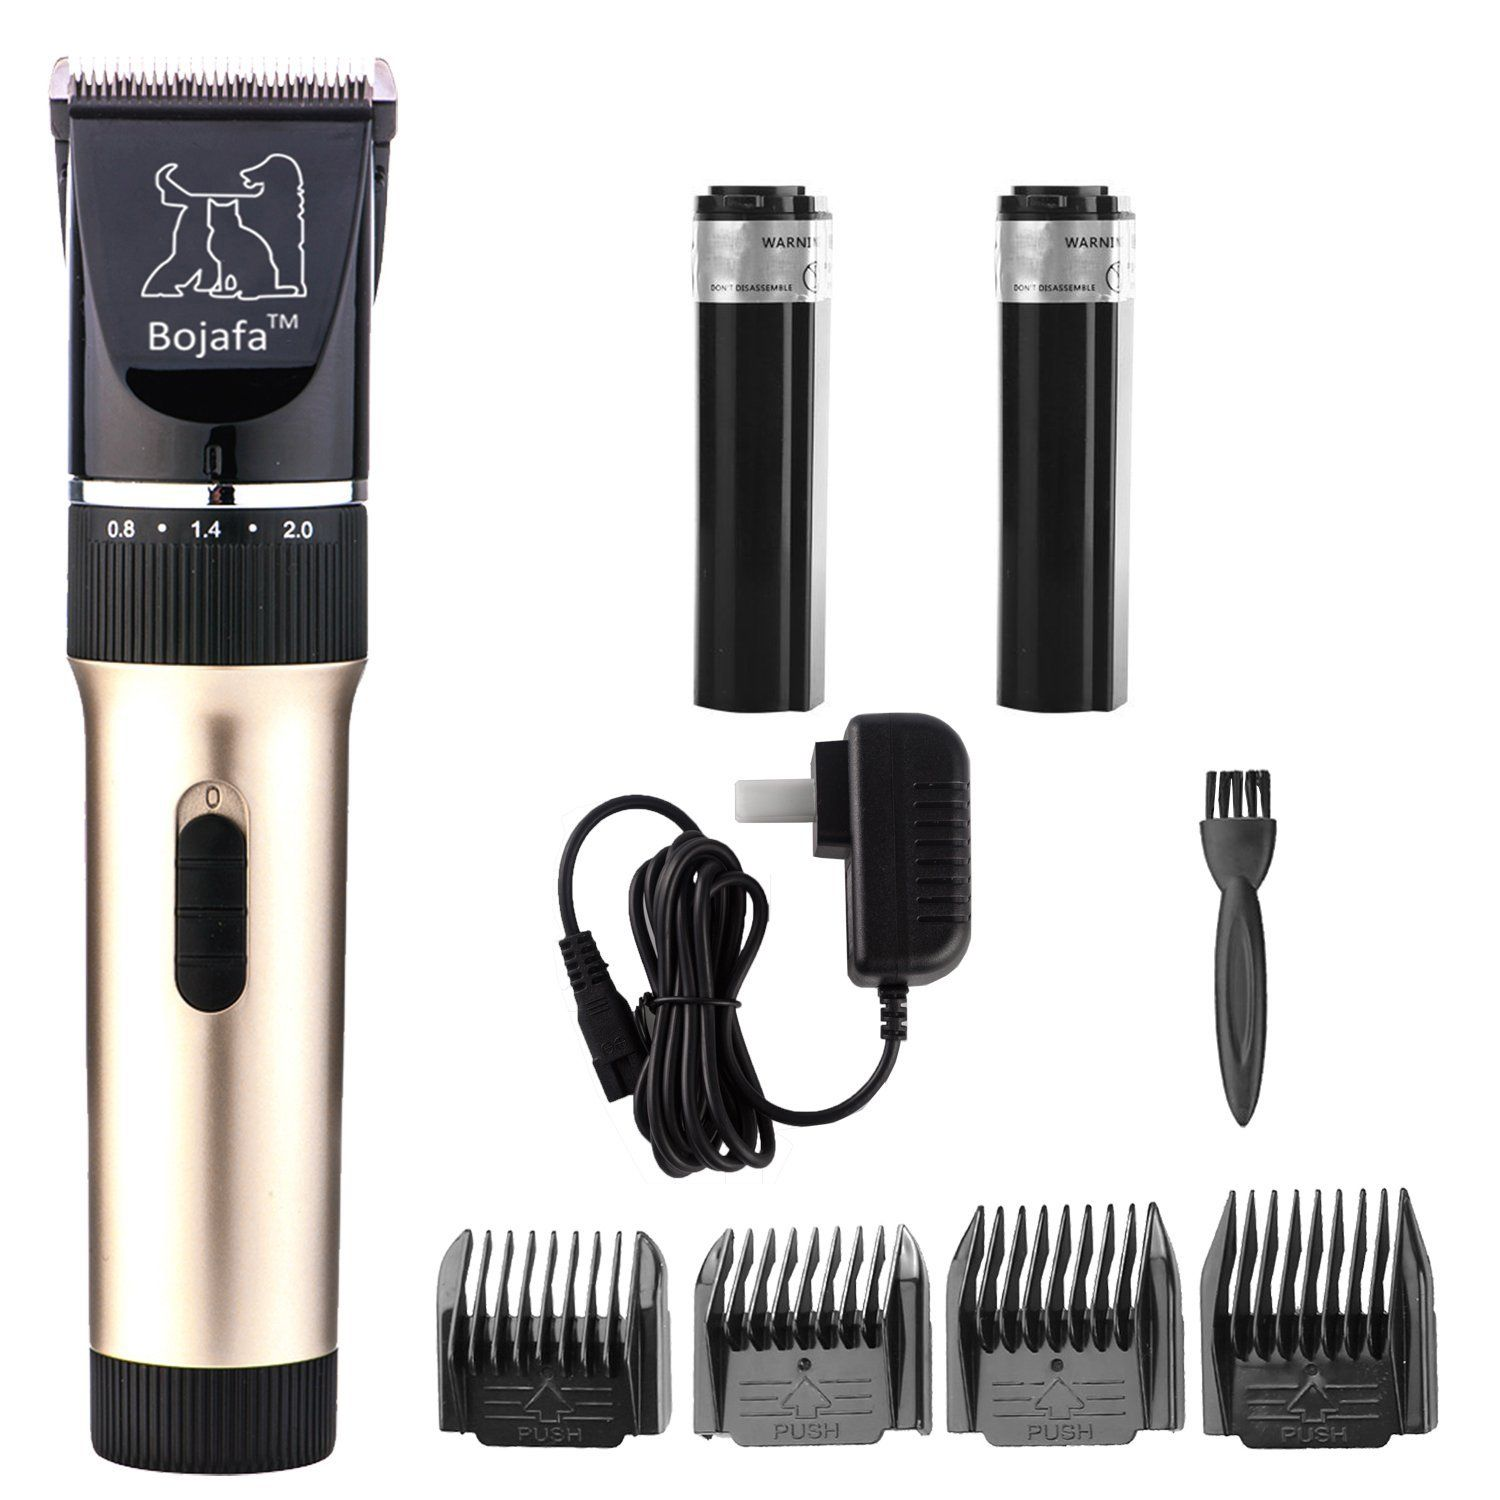 Bojafa Rechargeable Cordless Dog Grooming Clippers Quite Low